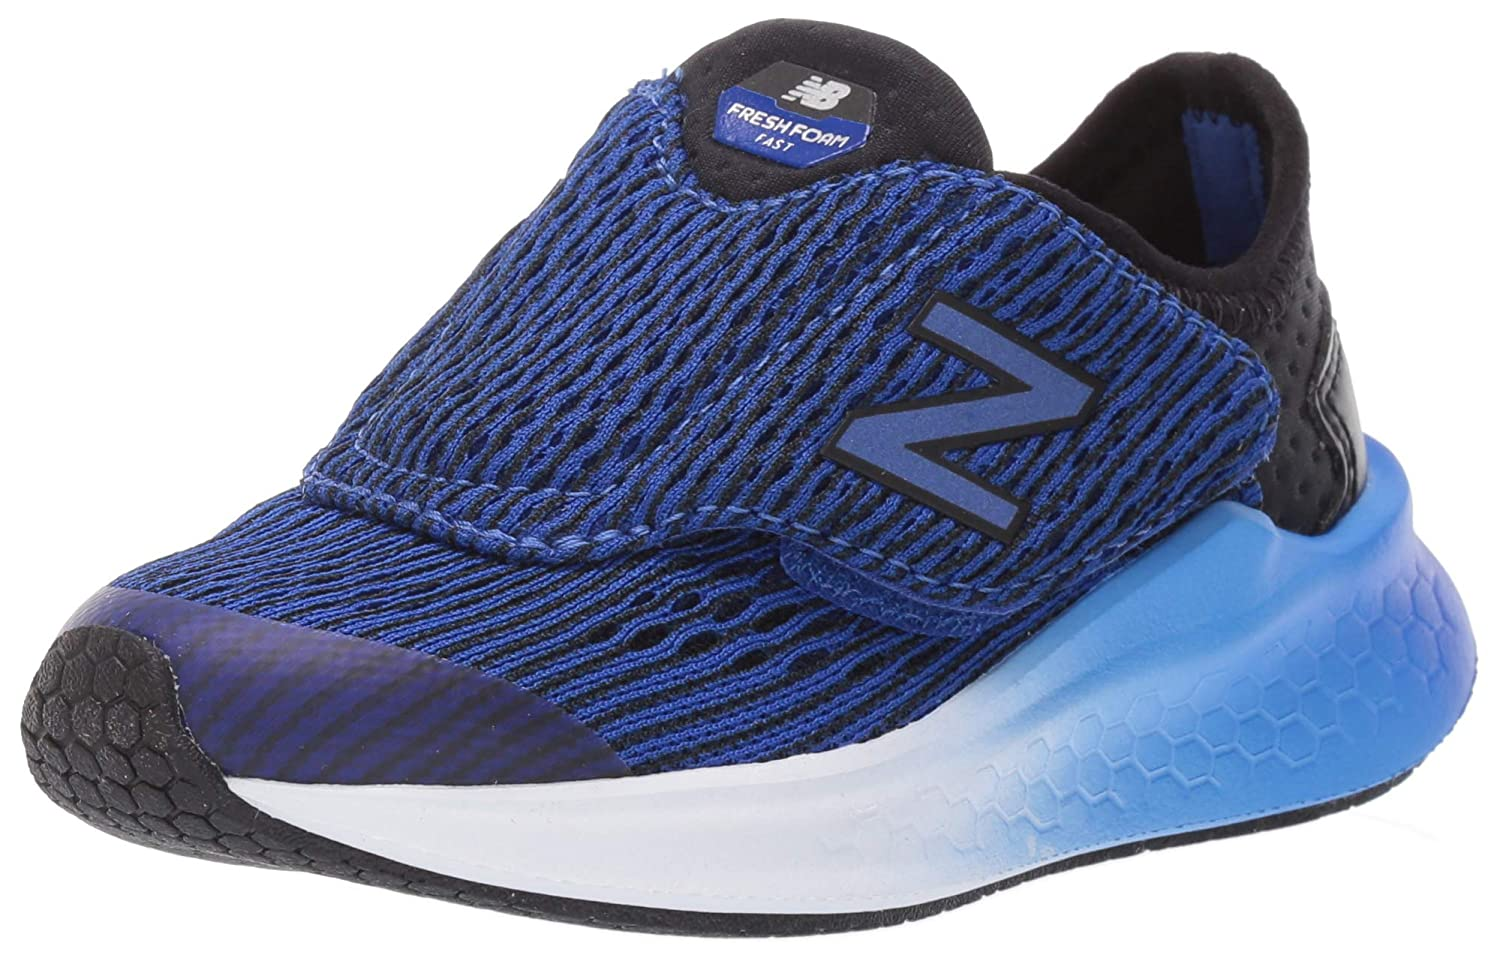 [ニューバランス] ユニセックスキッズ NB19-ITFSTBB-Infant Boys B07BQYMNT2 Black/Uv Toddler Blue 幼児(1~4才) B07BQYMNT2 M 幼児(1~4才)|Black/Uv Blue|9 M US Toddler, イワデチョウ:1822b2bf --- m2cweb.com